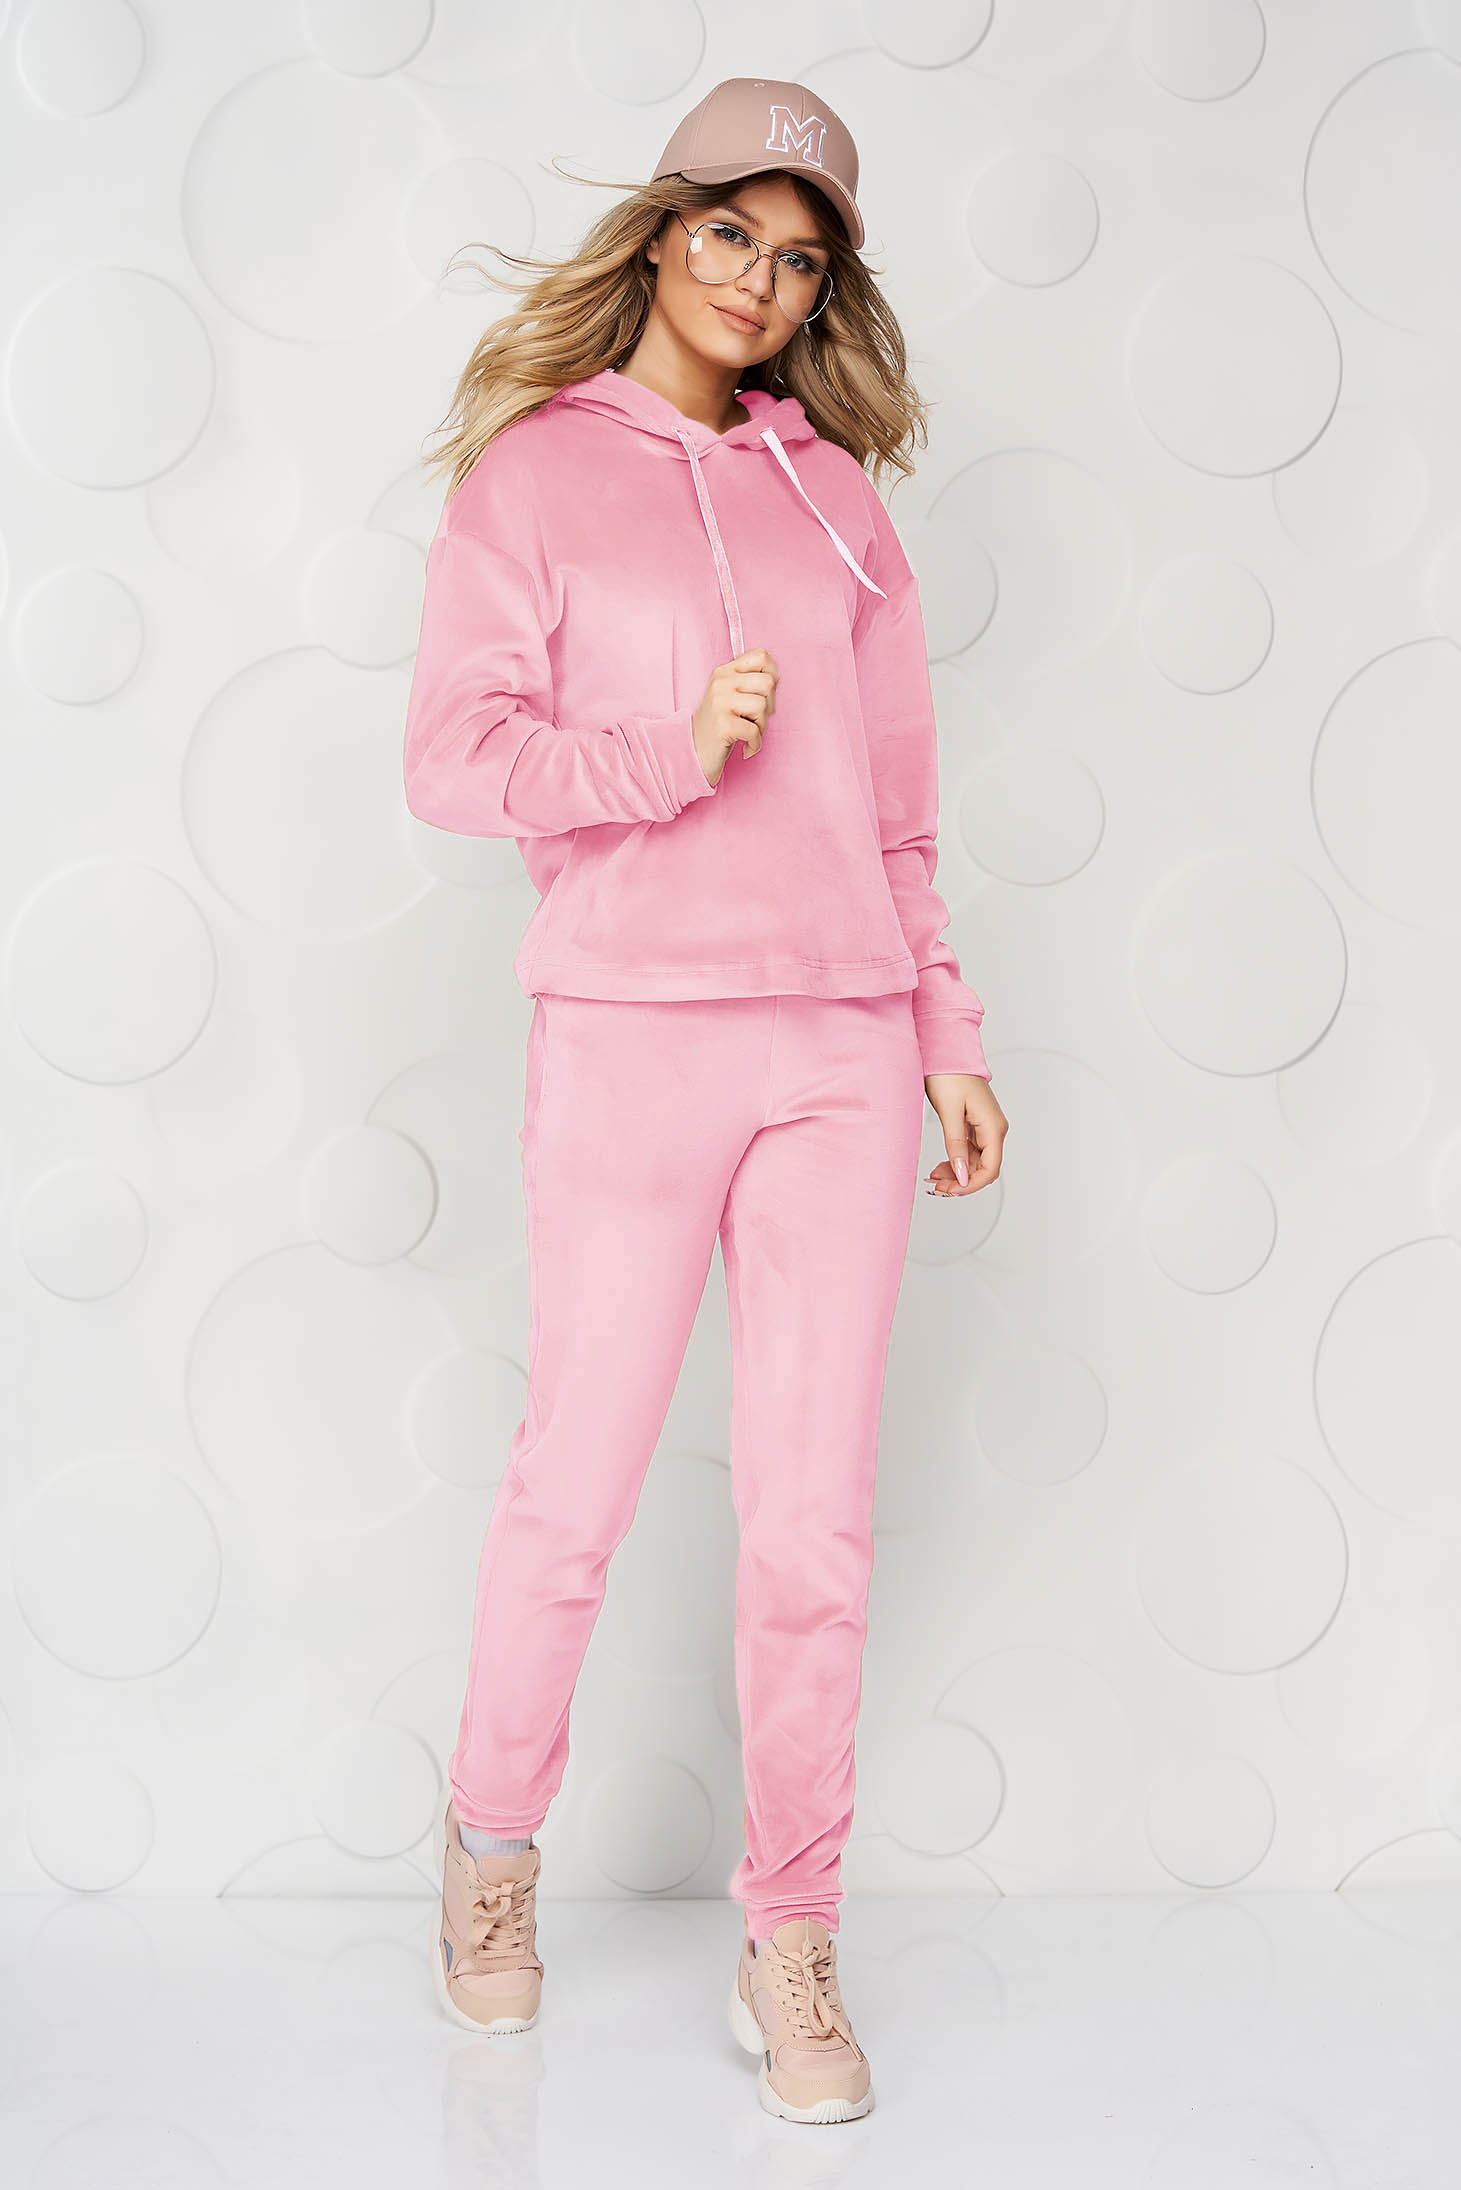 Pink sport 2 pieces 2 pieces loose fit with undetachable hood